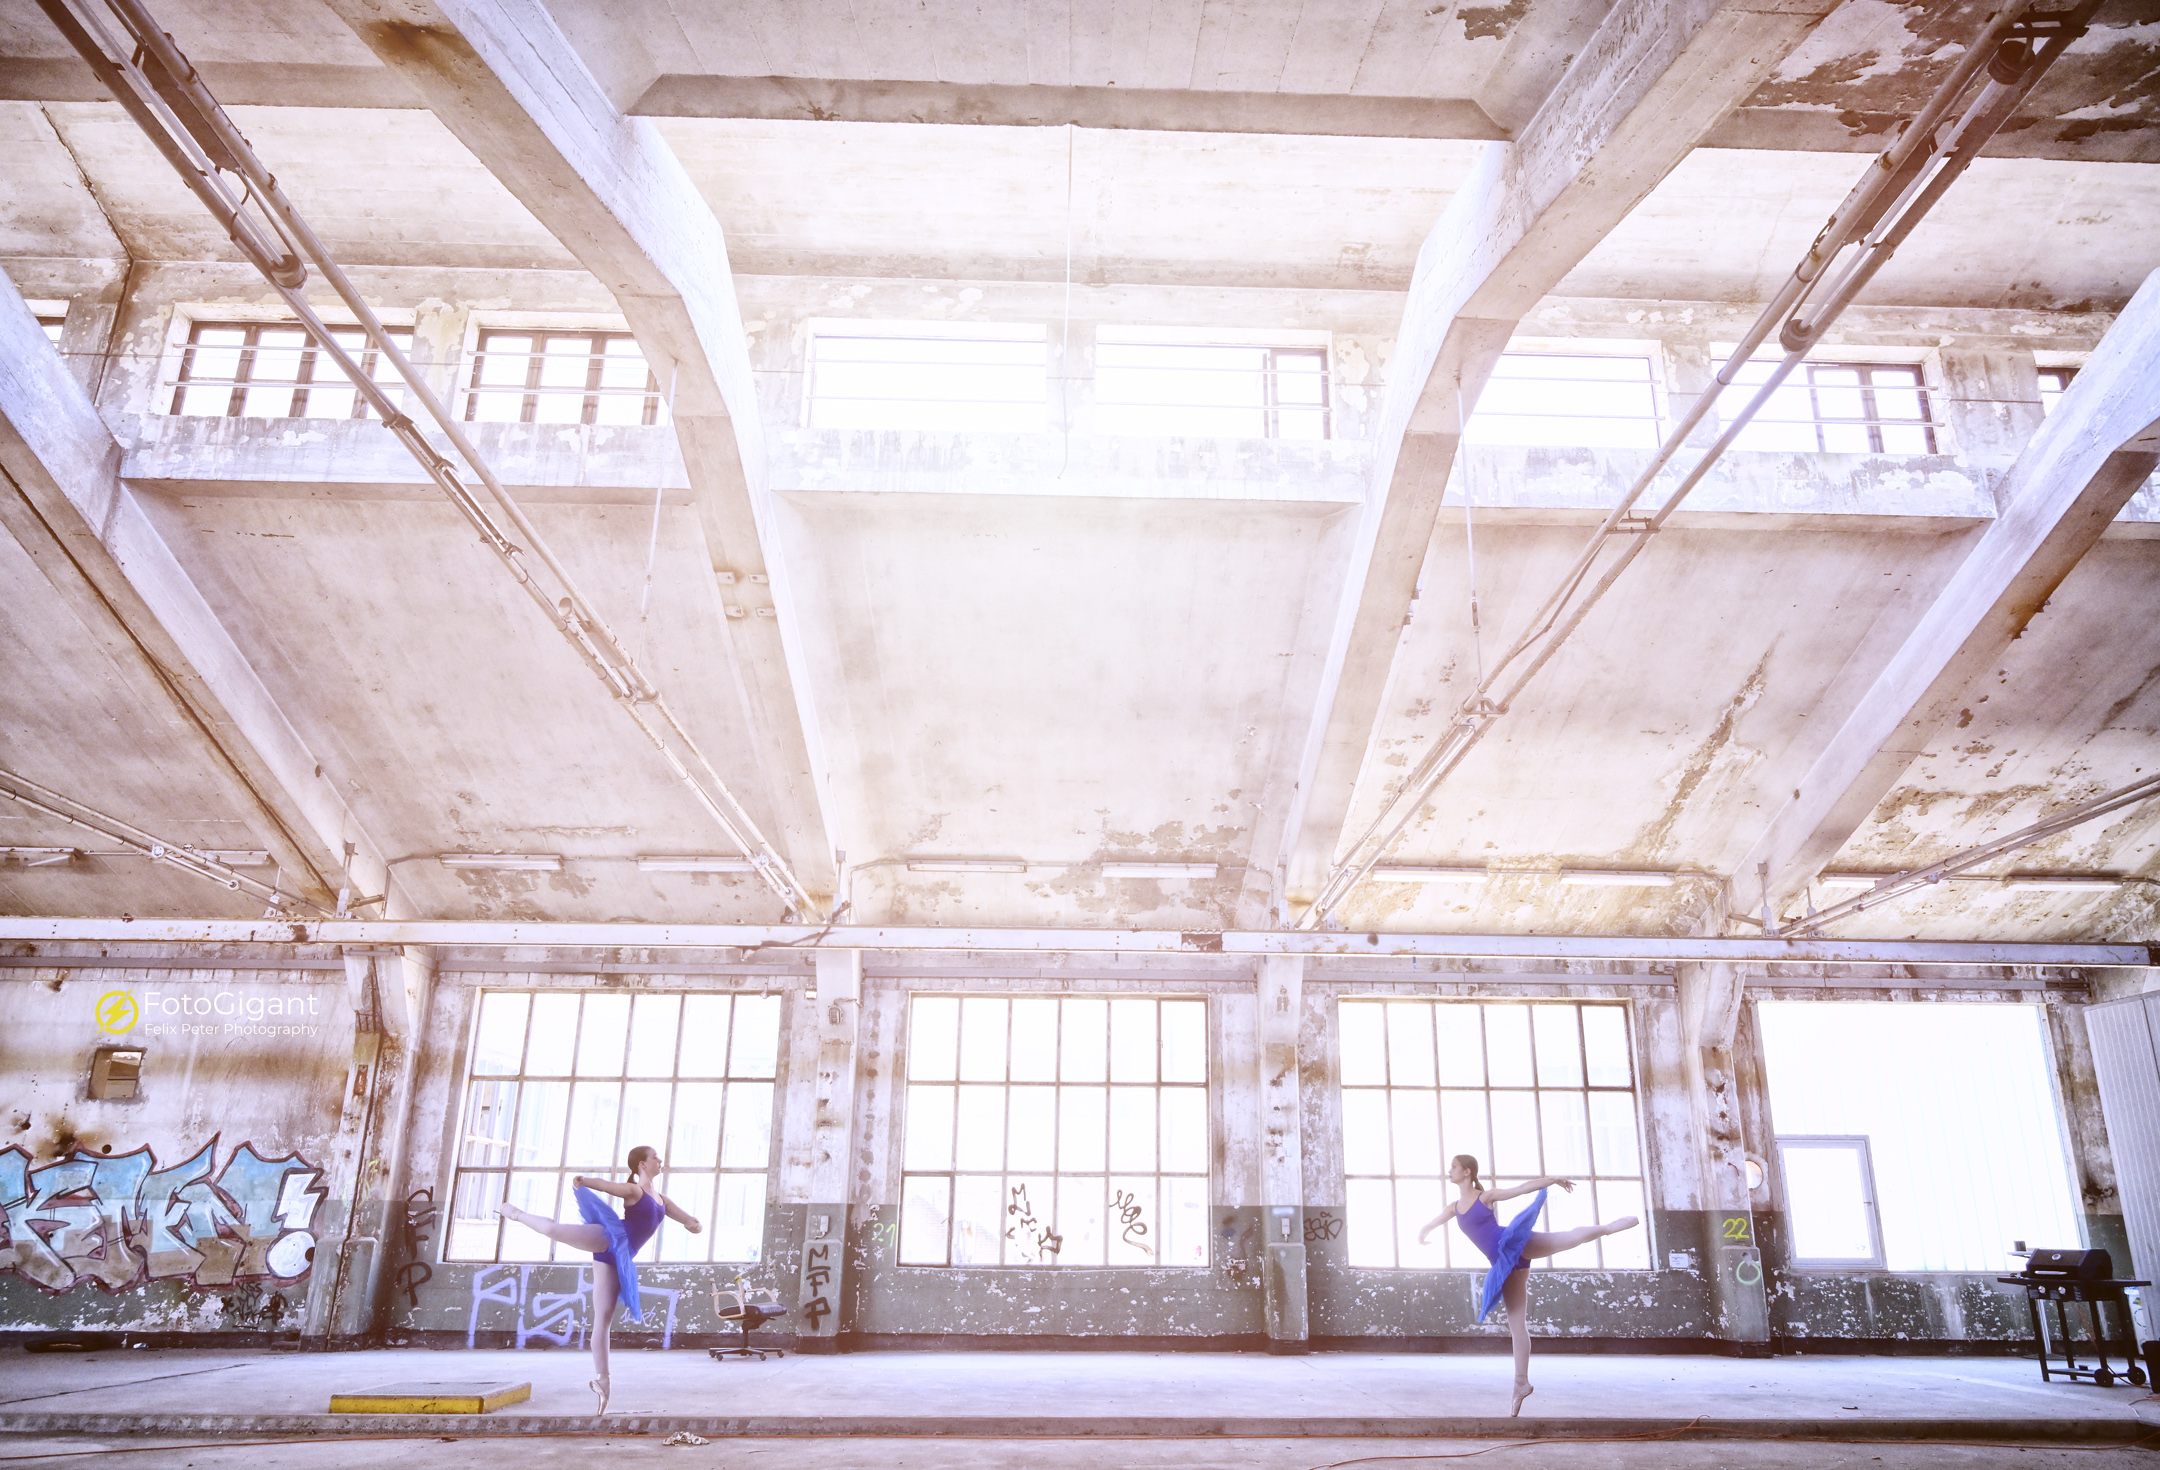 Balletdancer_in_Lostplace_11.jpg